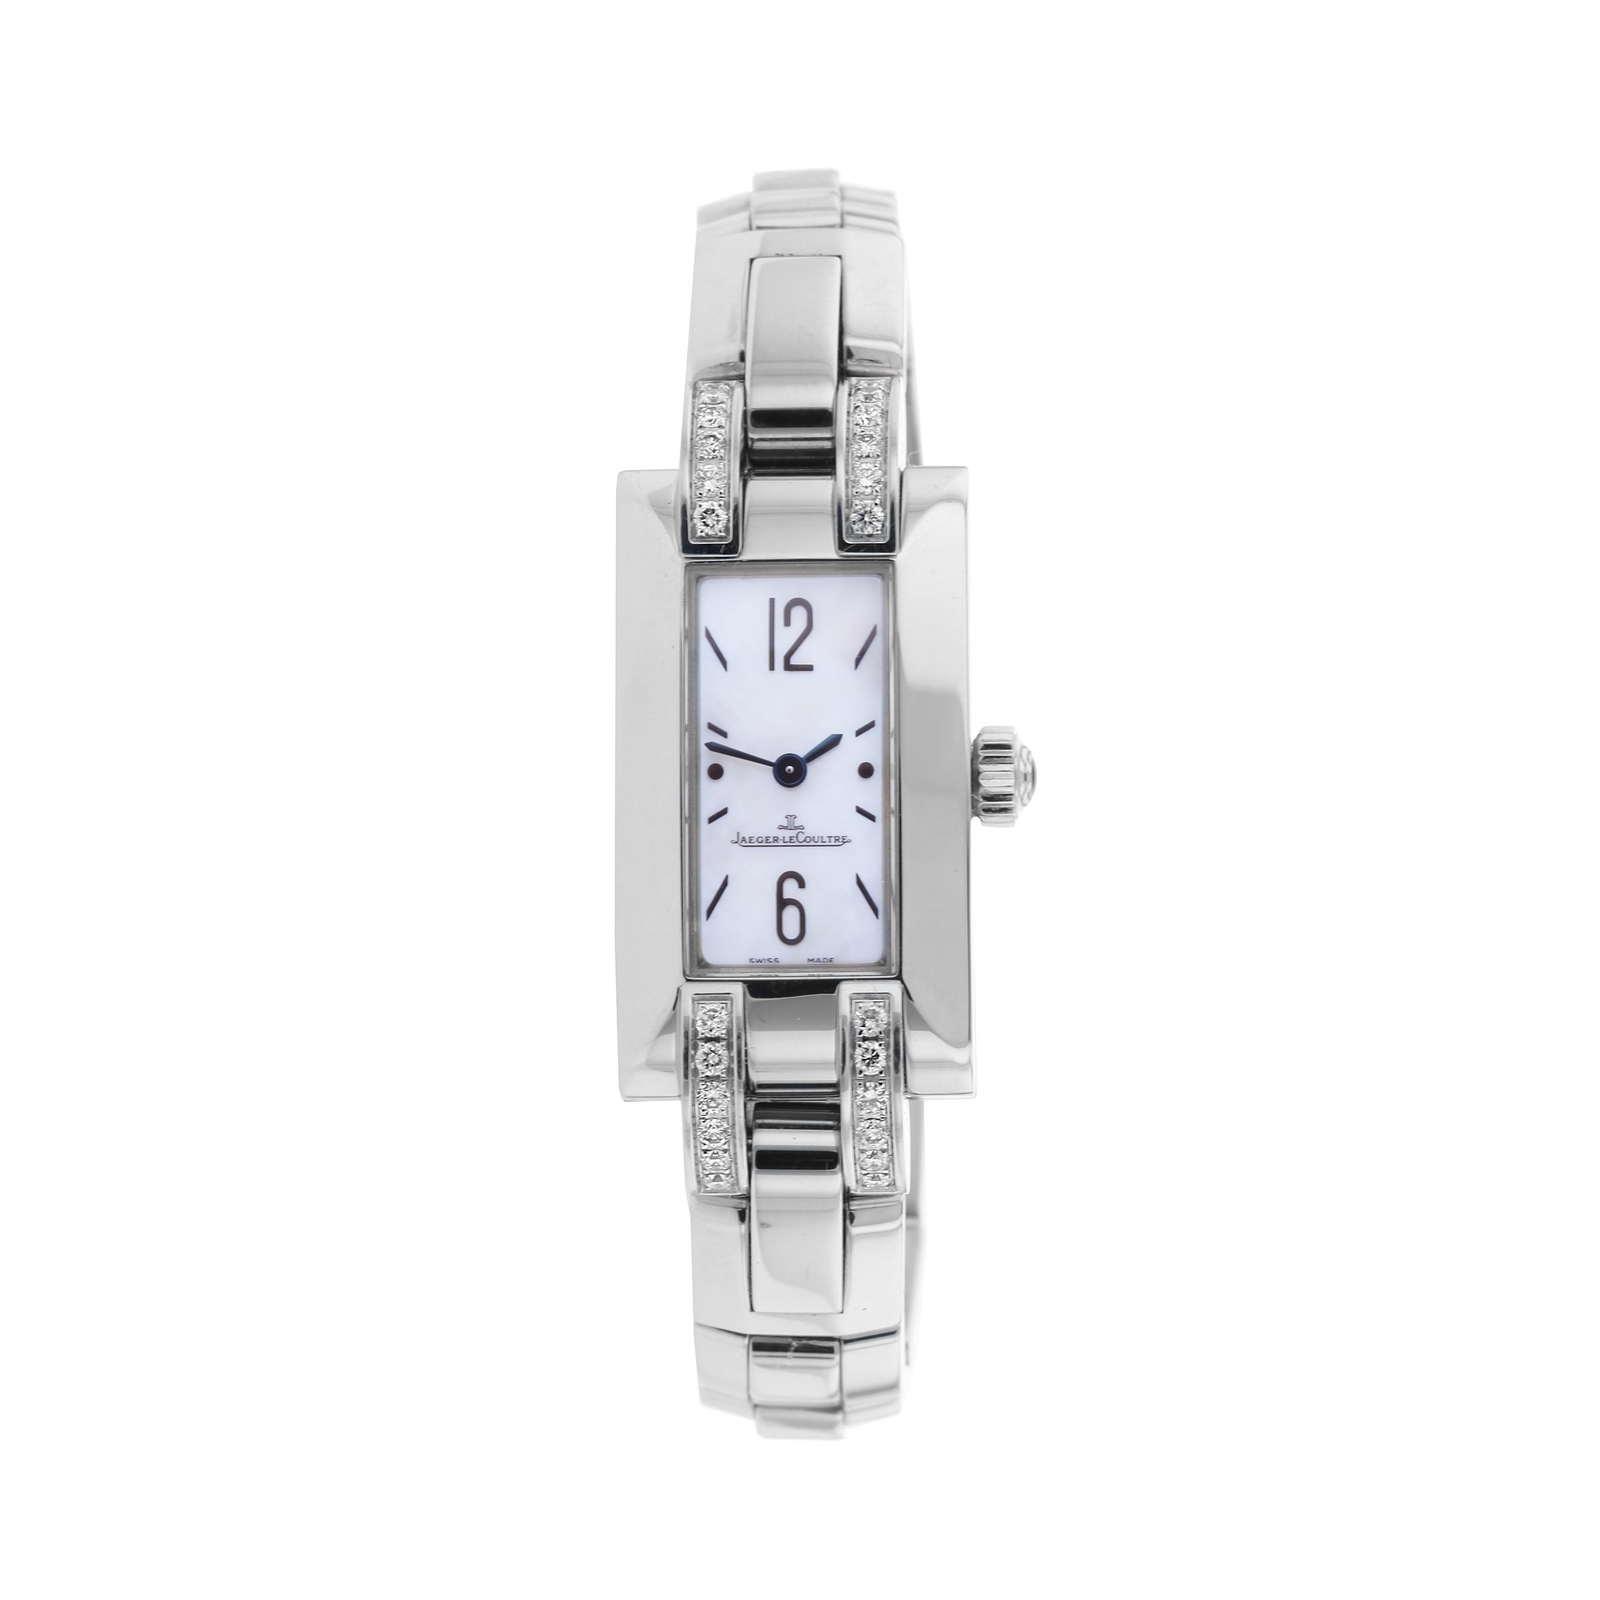 Pre-Owned Jaeger-LeCoultre Mens Watch, Circa 2005